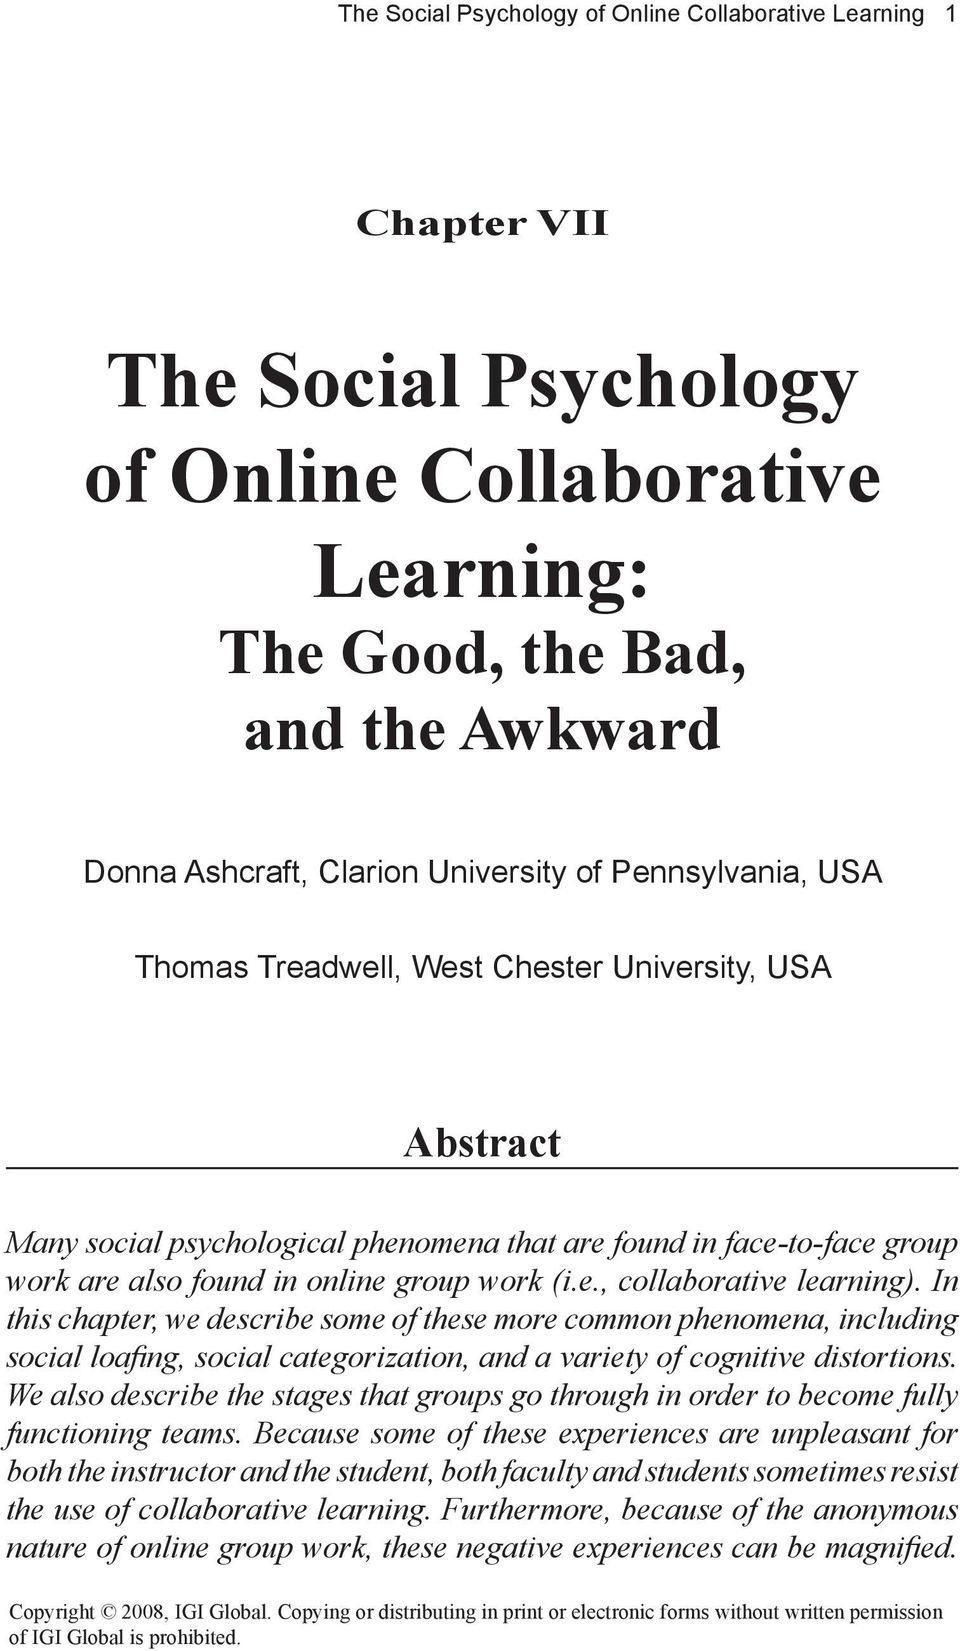 In this chapter, we describe some of these more common phenomena, including social loafing, social categorization, and a variety of cognitive distortions.